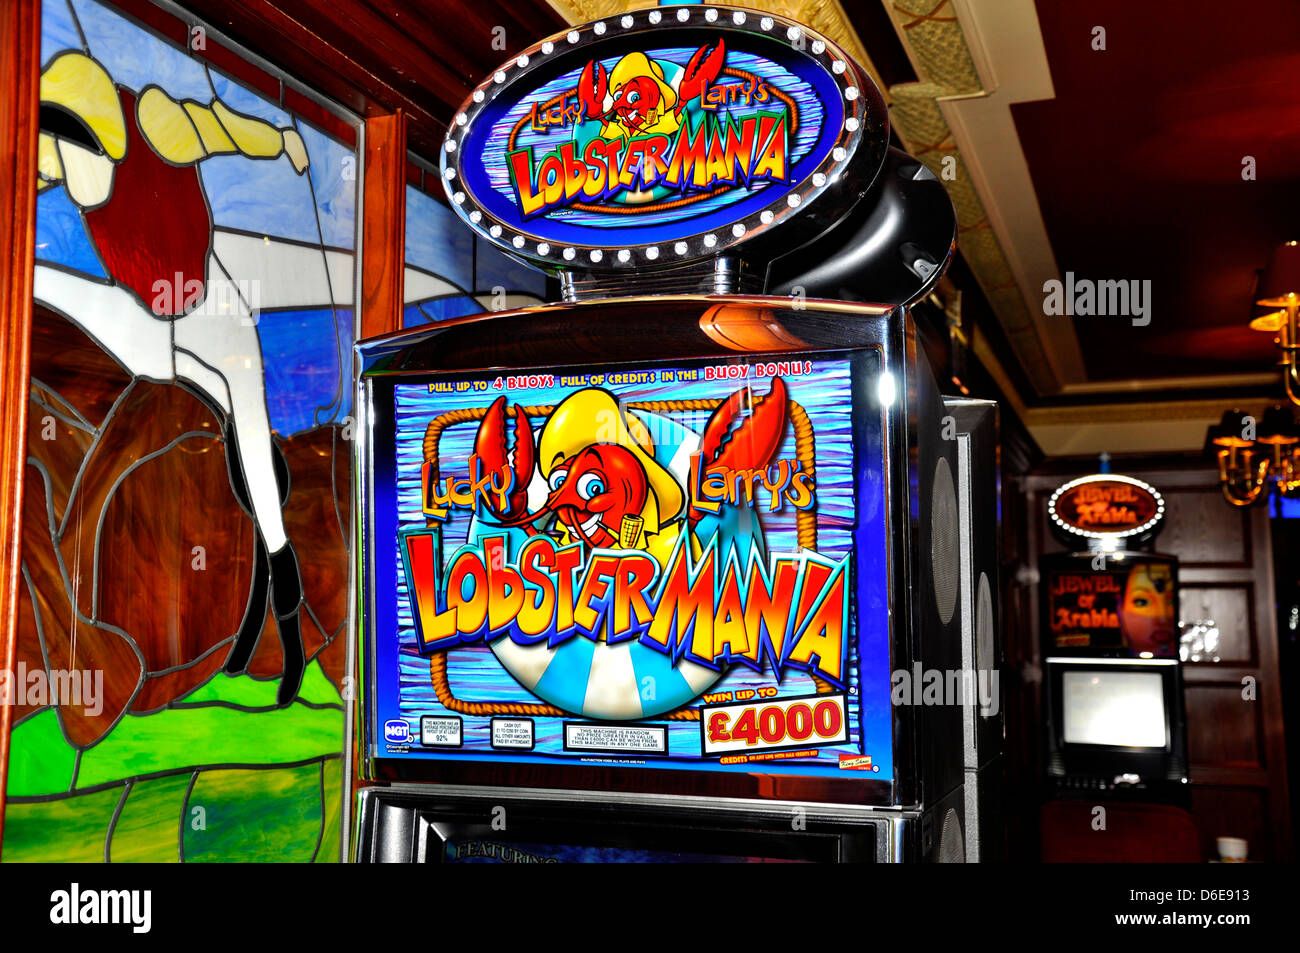 Slot casino machine games procter and gamble competitors in india